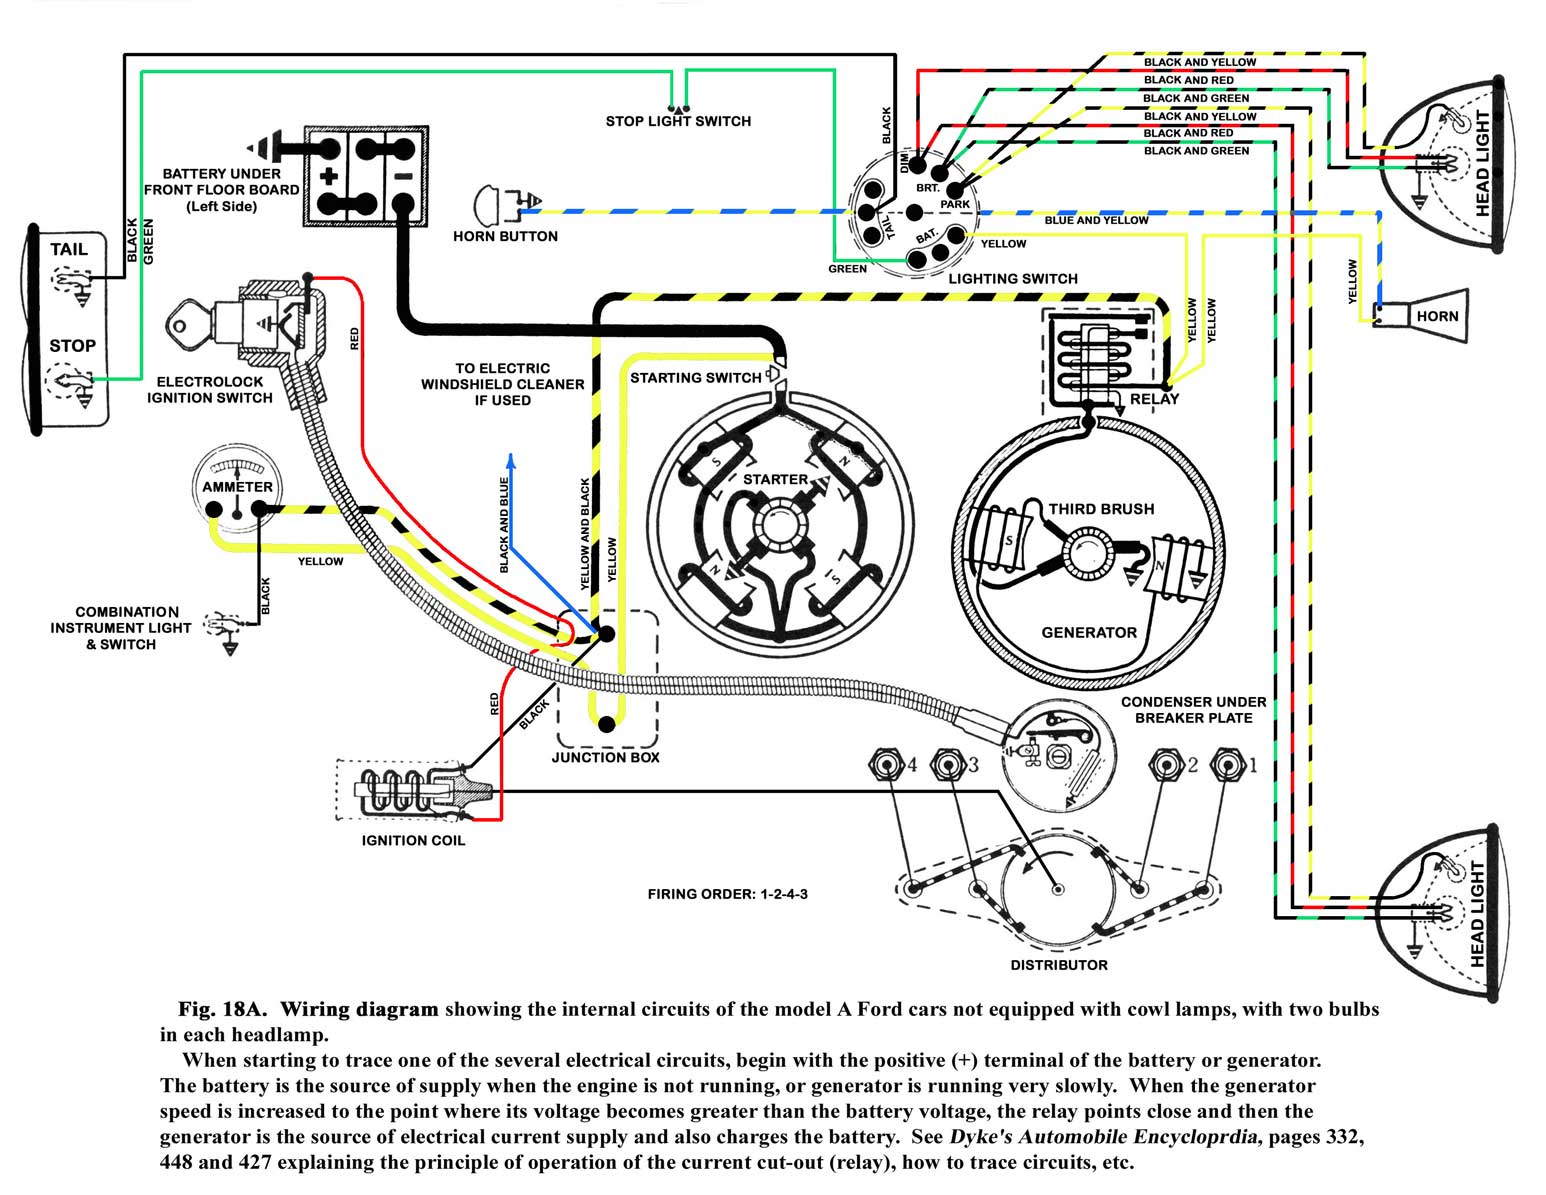 model a wiring diagram capitol a s rh sacramentocapitolas org Model A Wiring Diagram for Generator model a wiring diagram 12 volt